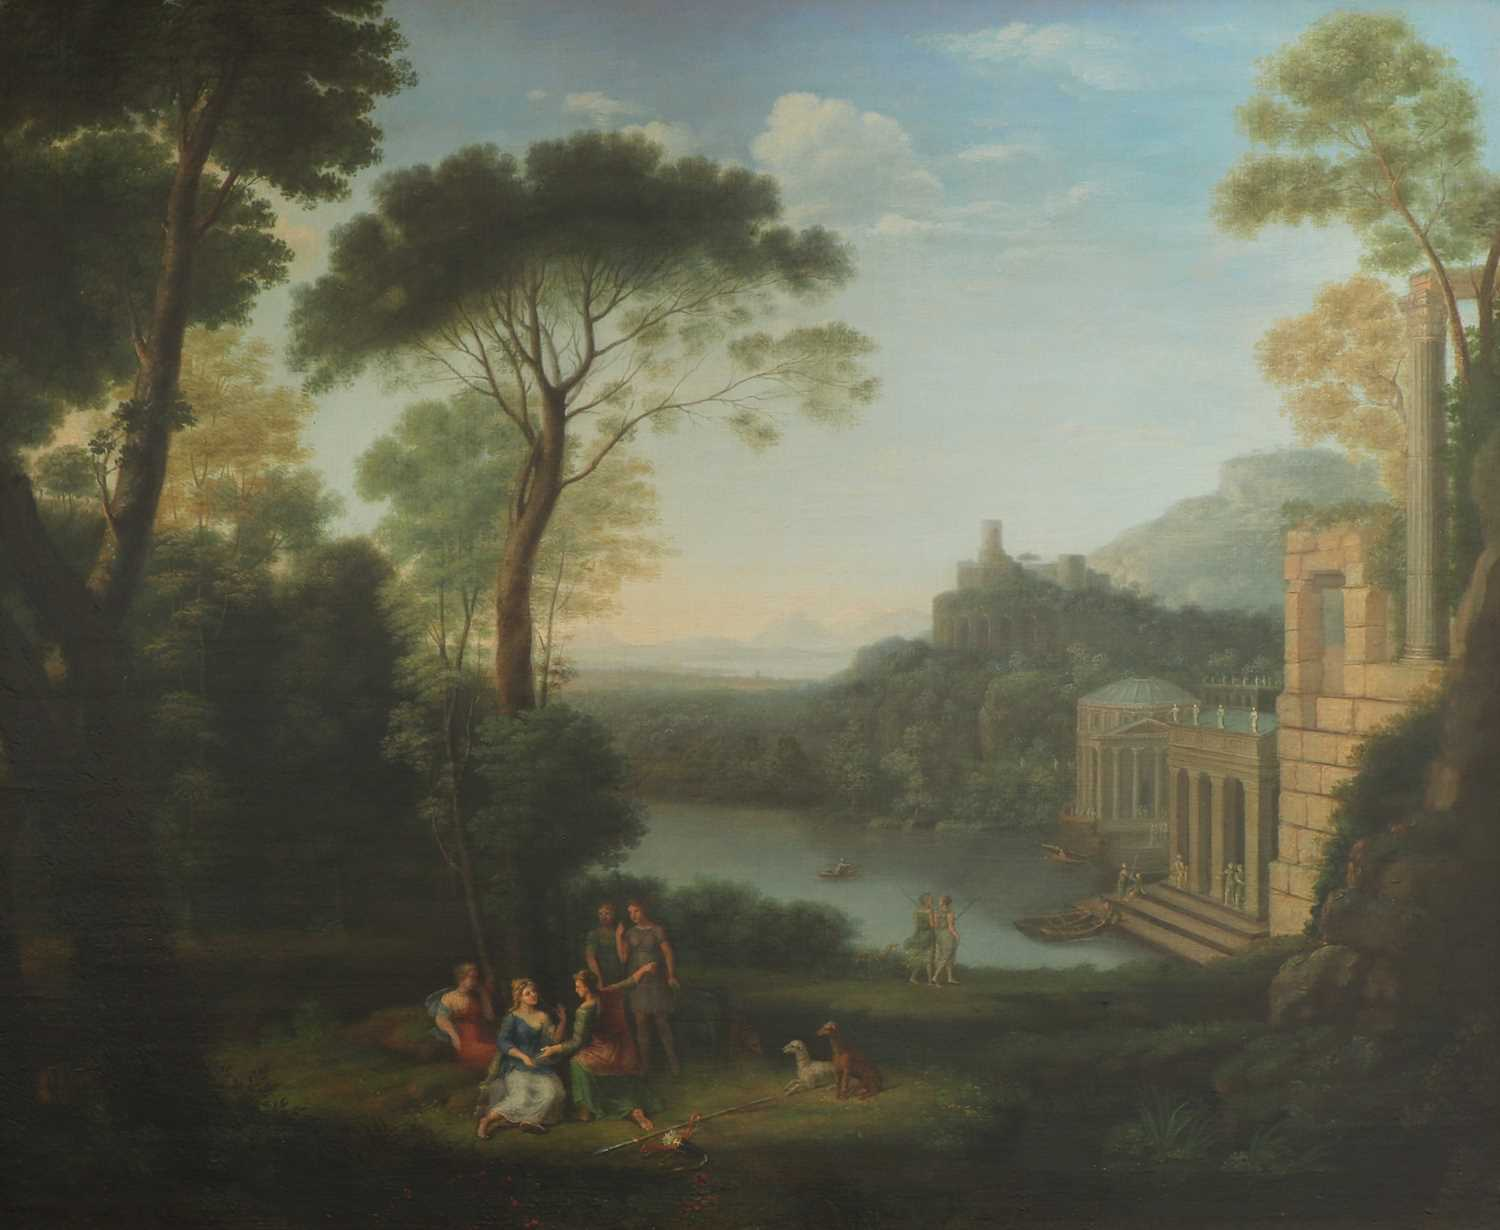 After Claude Lorrain - Image 2 of 5